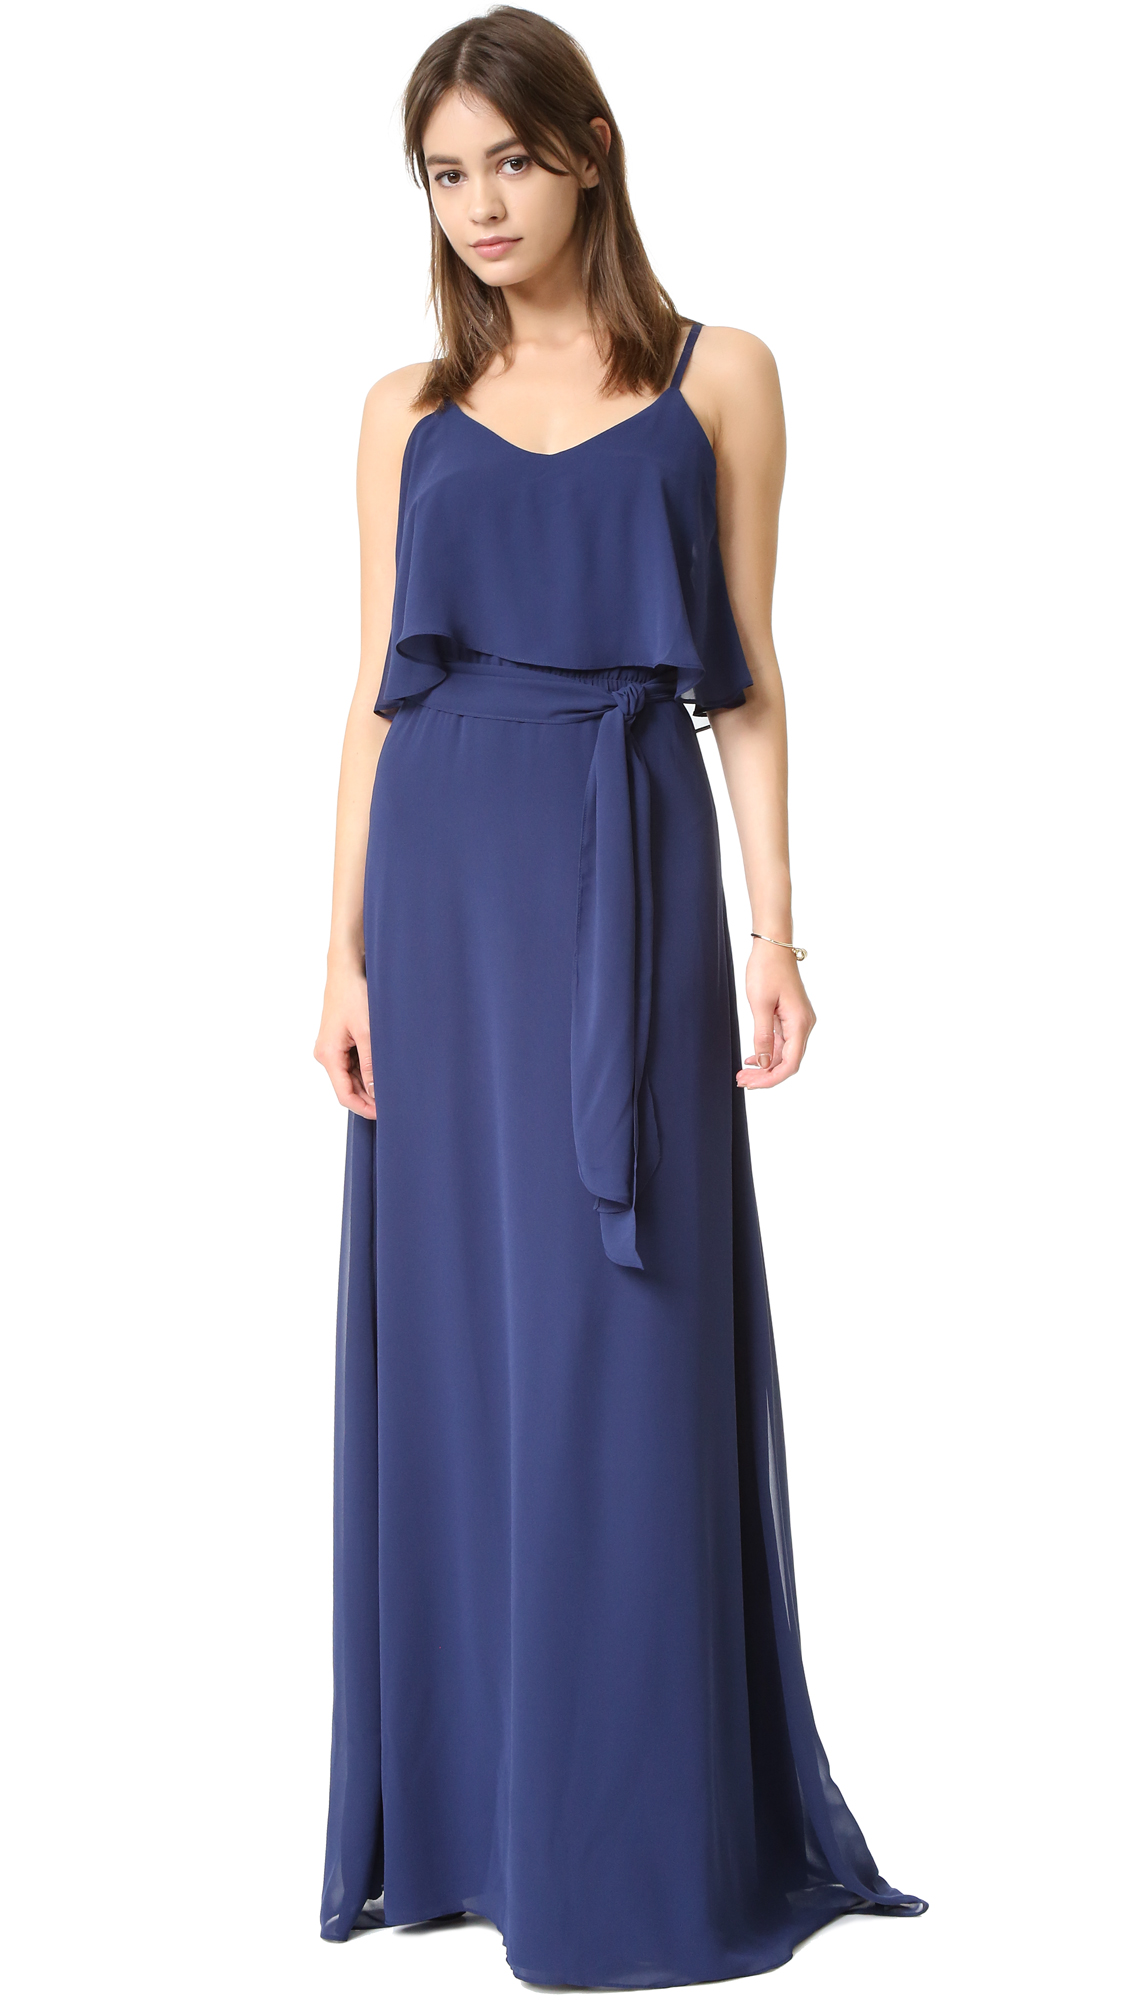 Joanna August Dani Maxi Dress - Tangled Up In Blue